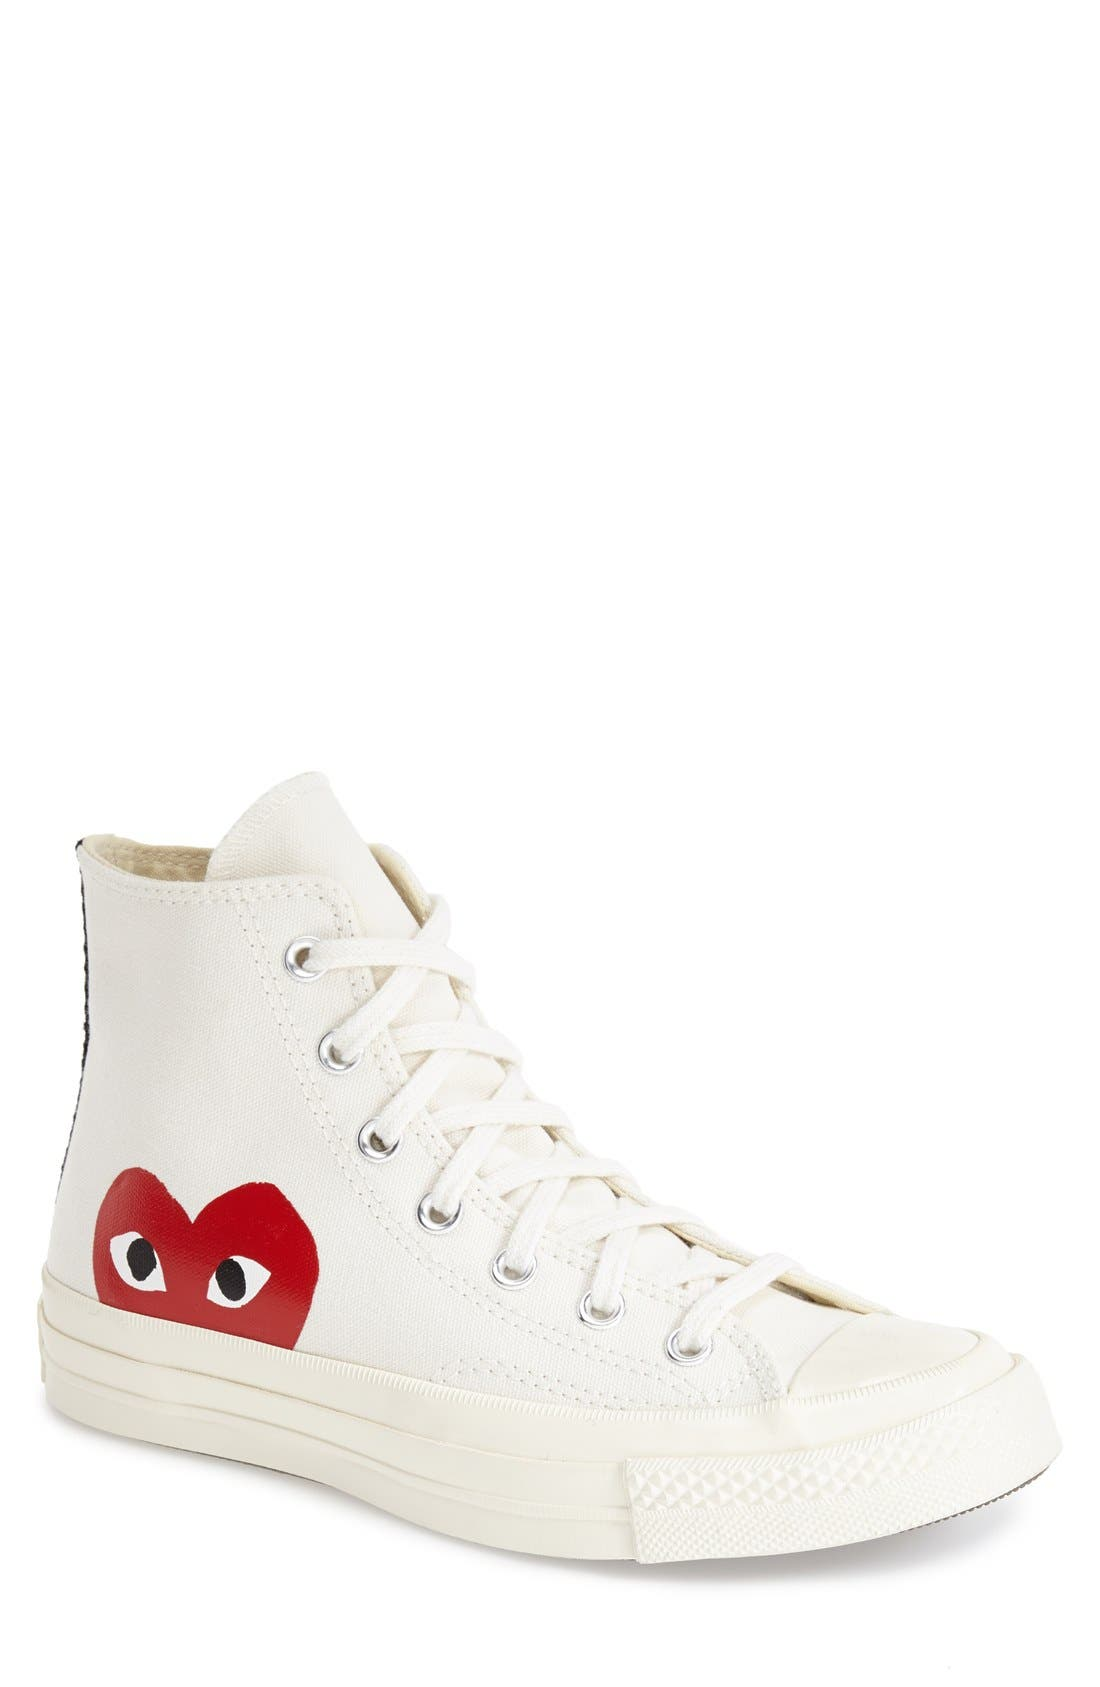 cdg converse off white